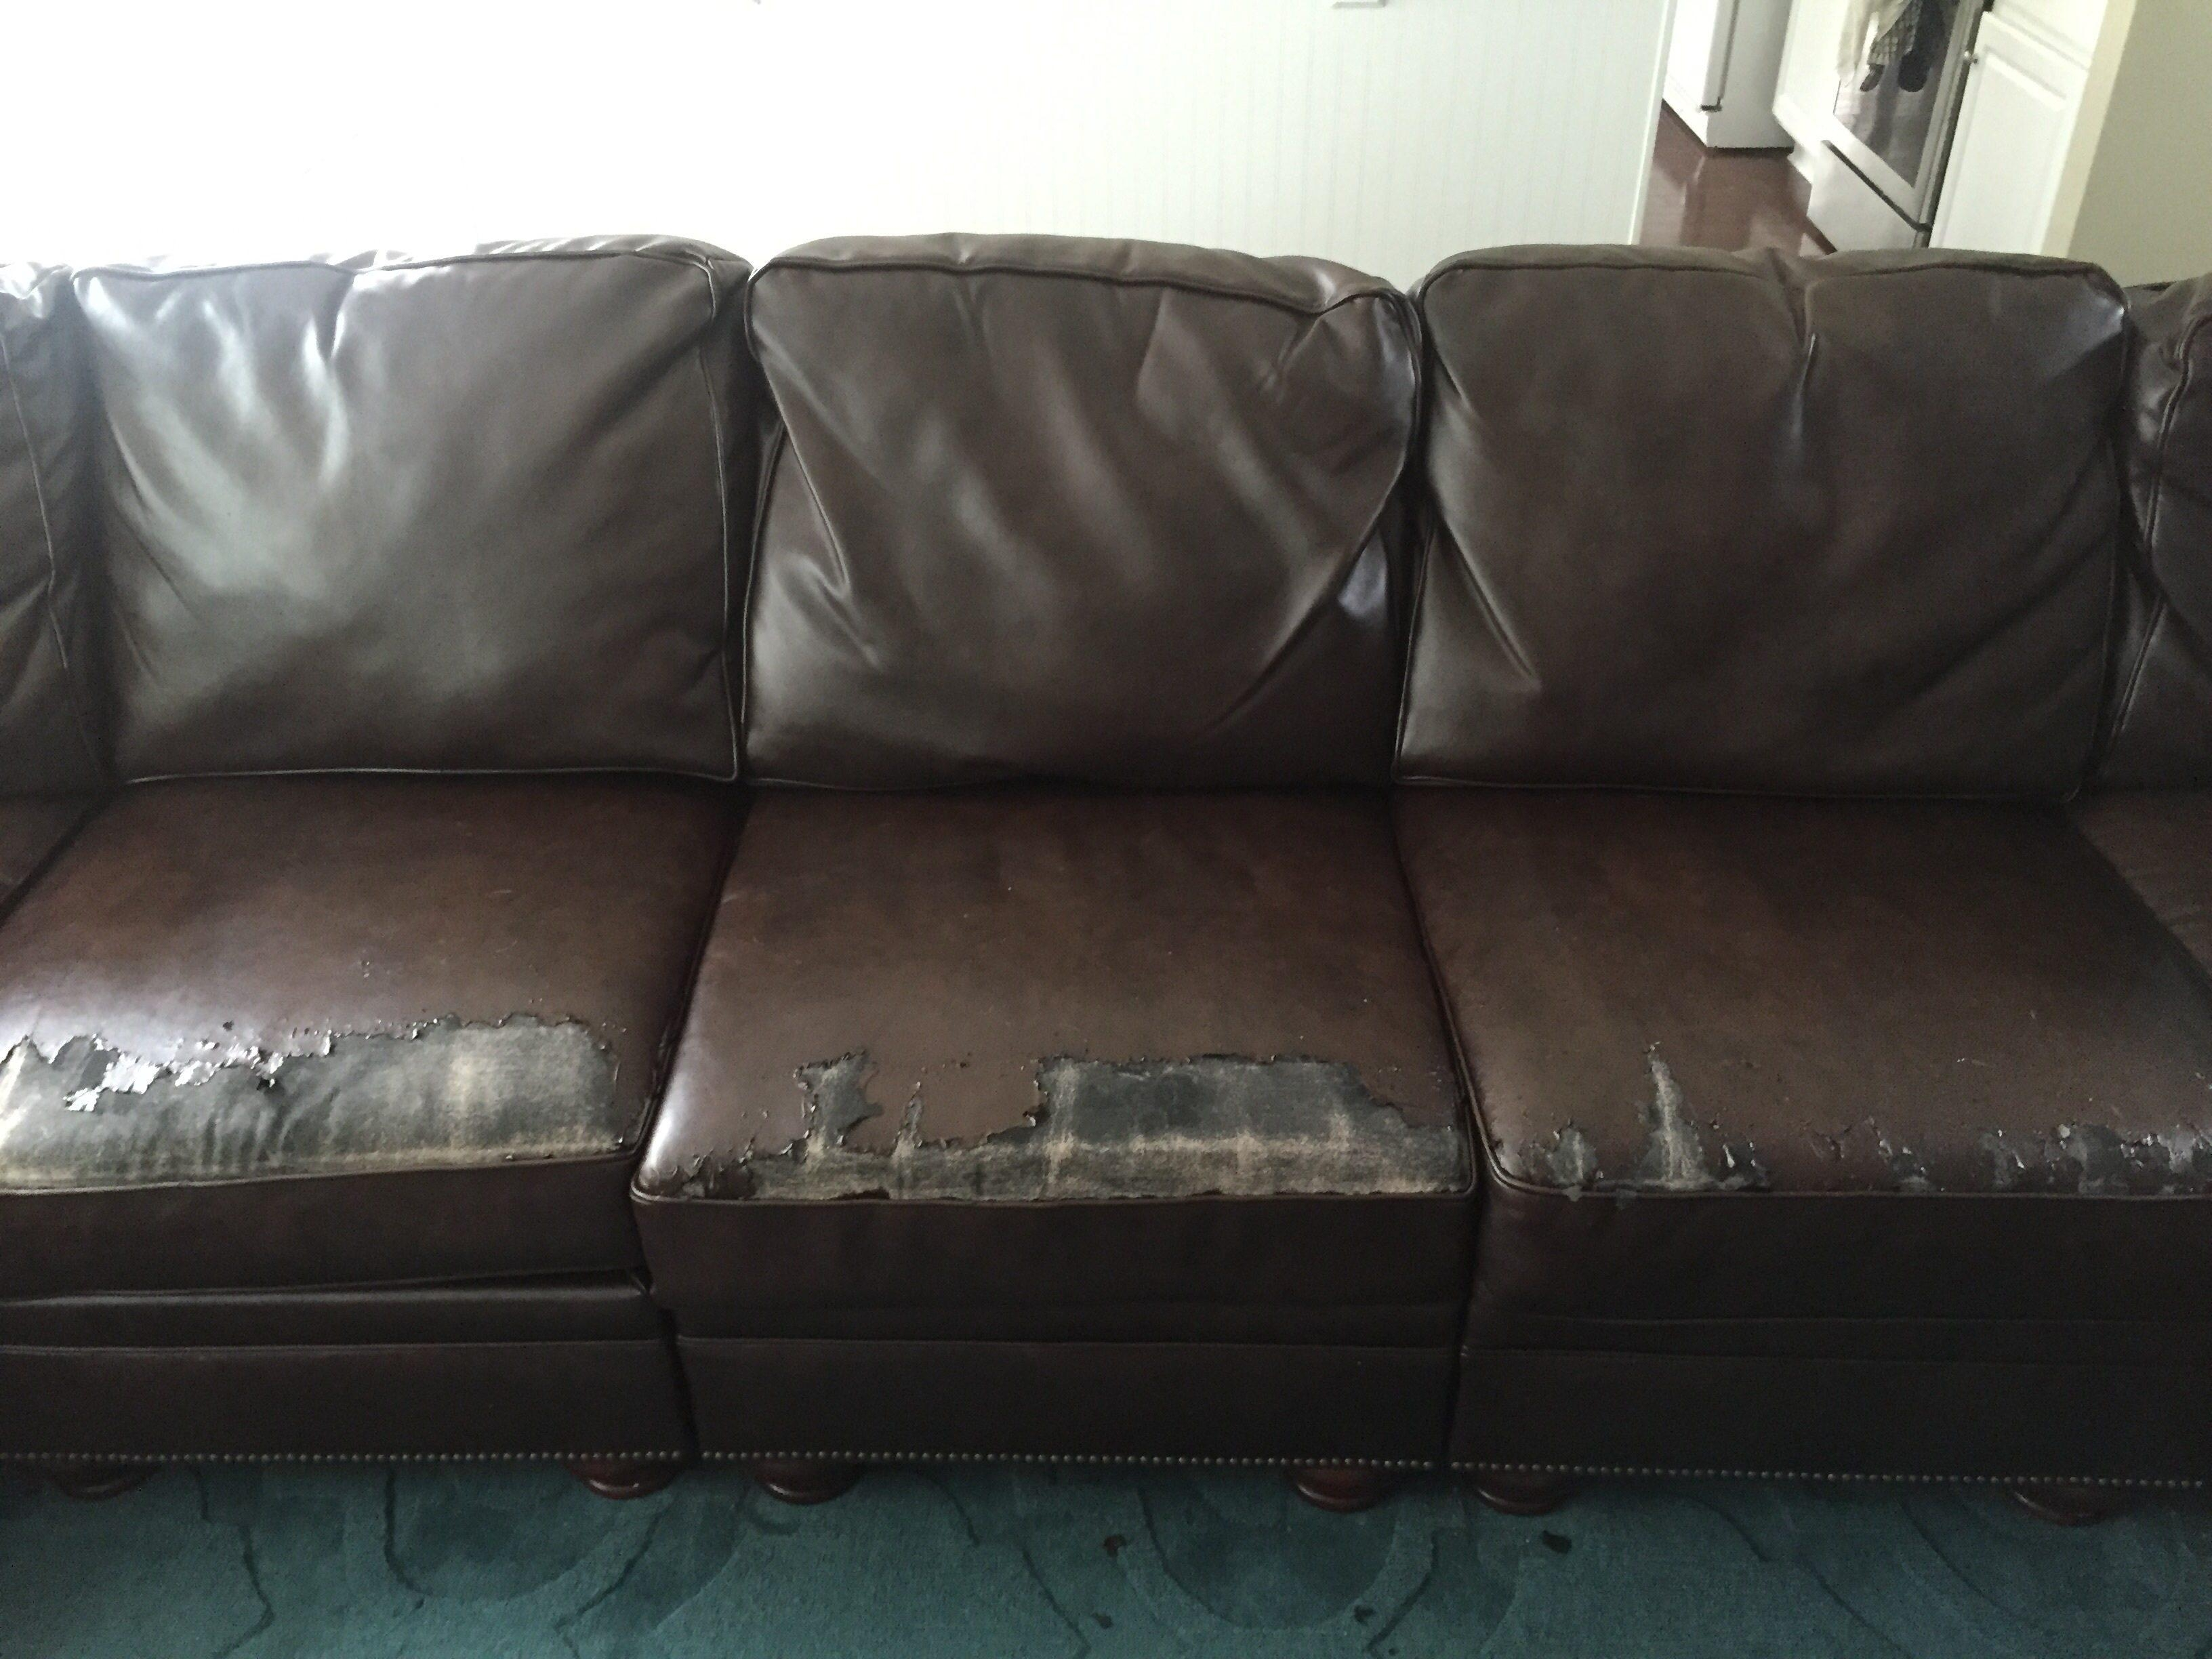 Top 129 Reviews And Complaints About Broyhill Pertaining To Broyhill Sectional Sofas (View 12 of 15)